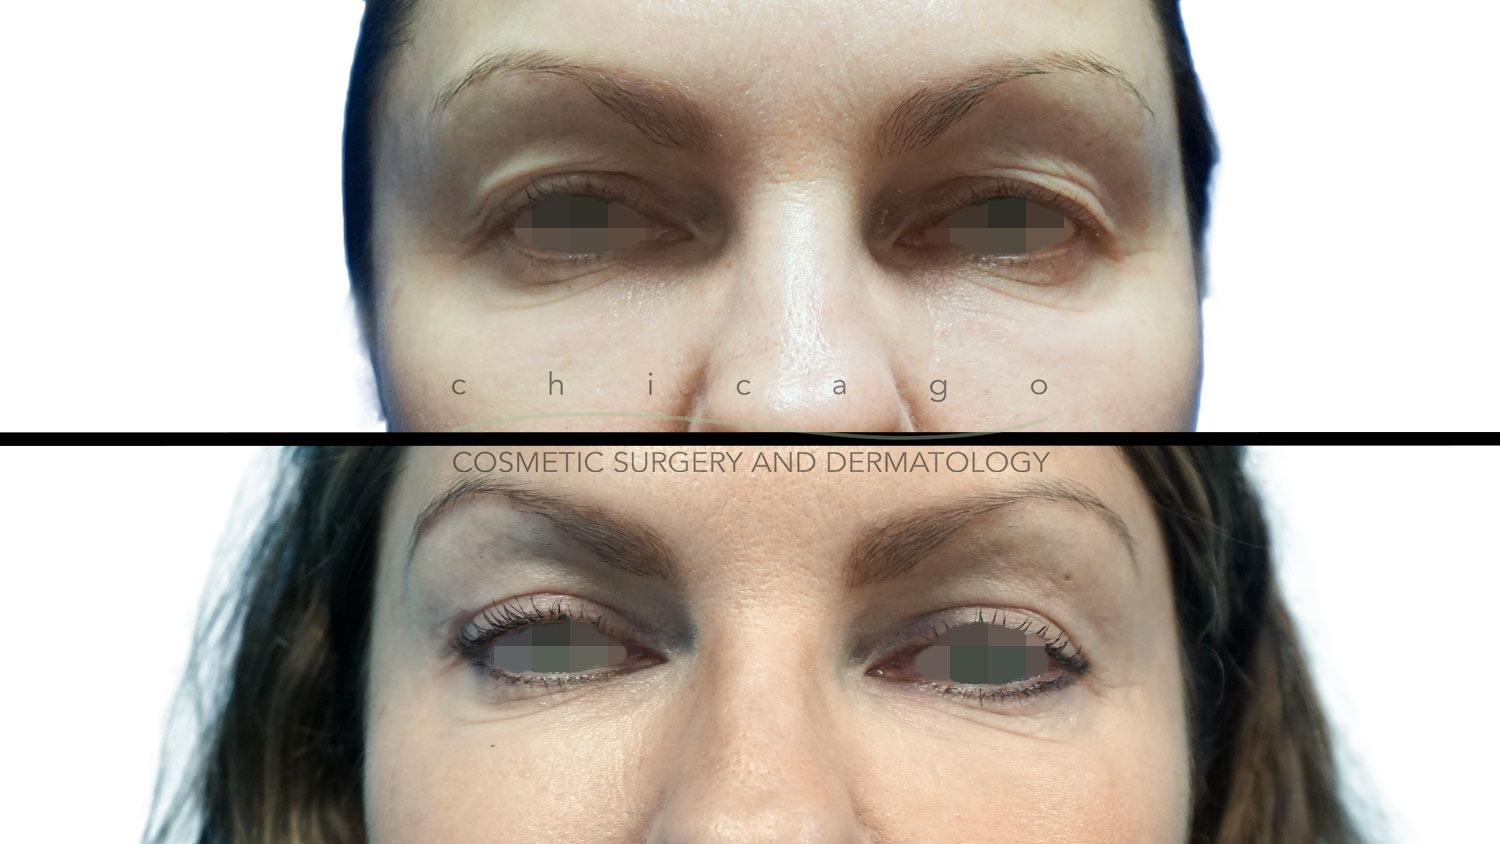 blepharoplasty surgery results